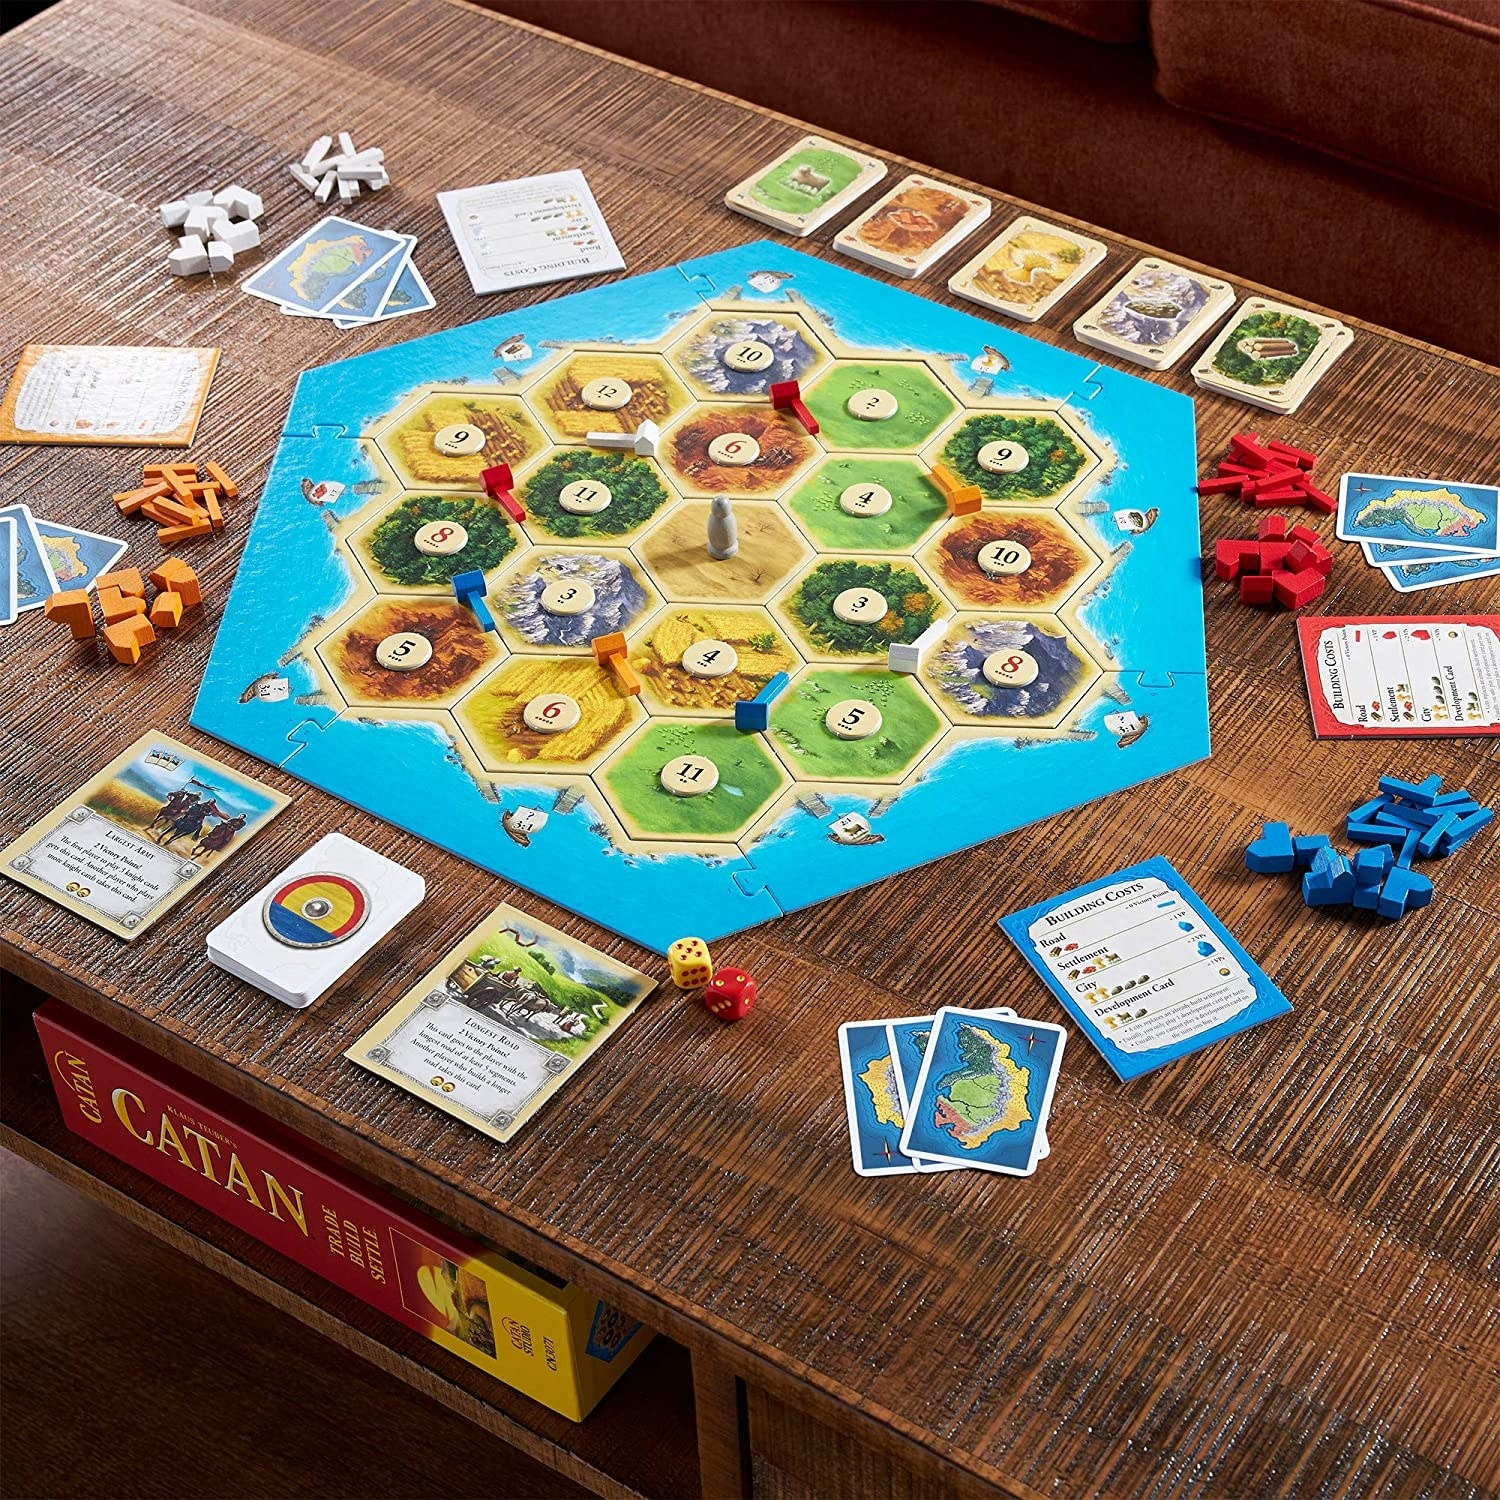 the catan board set up with chips and cards